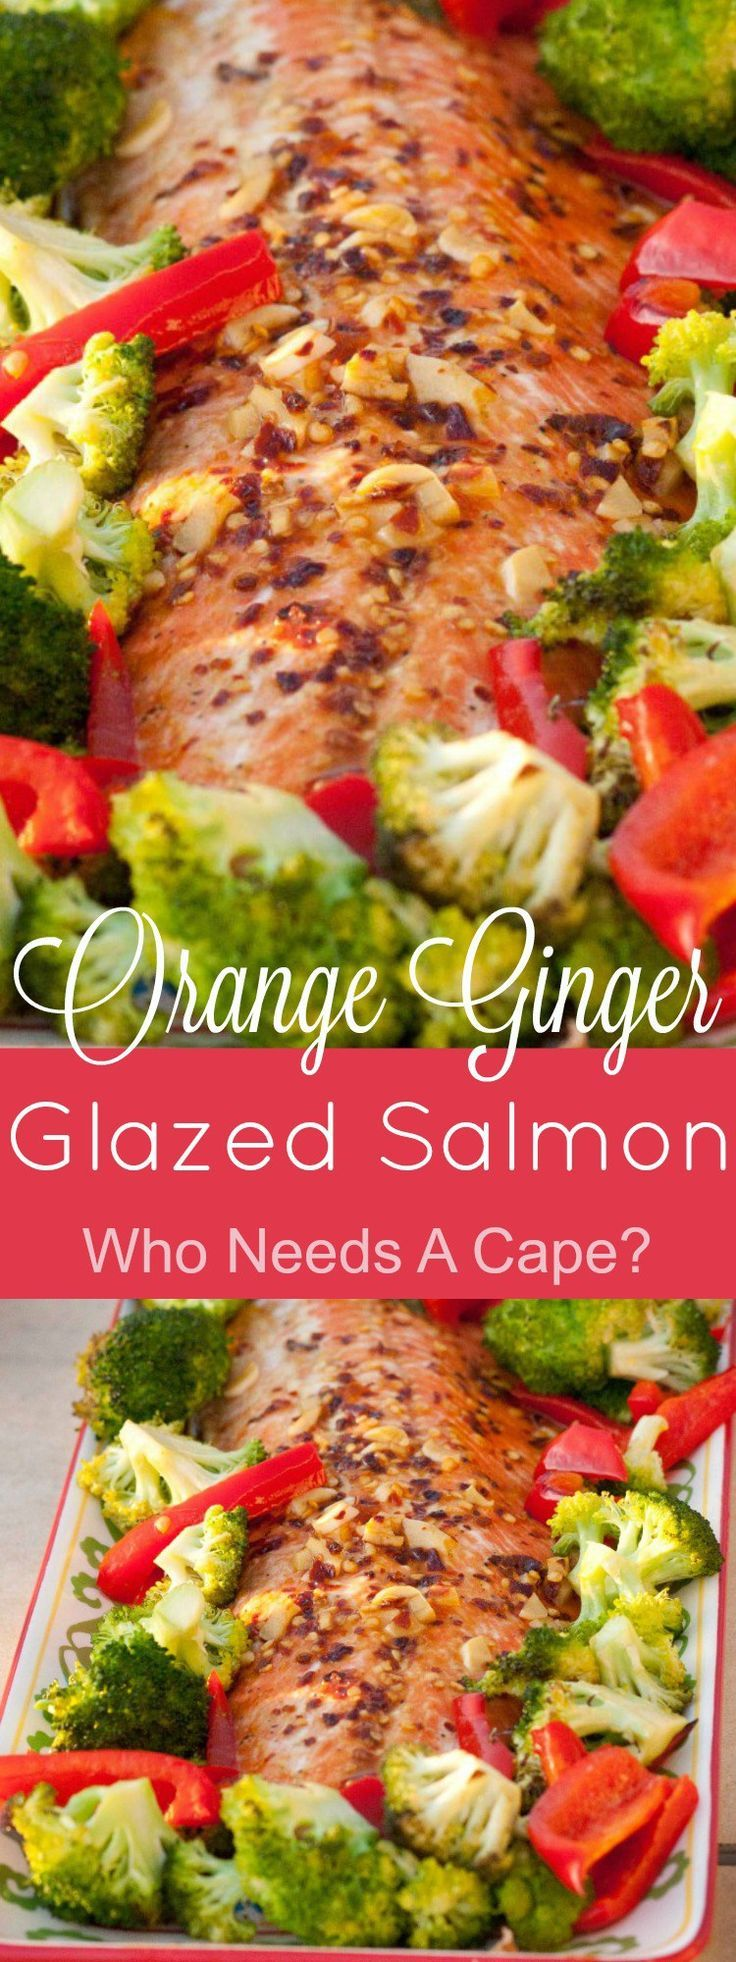 This Orange Ginger Glazed Salmon is a lovely dish full of flavor! With a tasty marinade that brings this dish to life, you'll also love how this is done. | Who Needs A Cape?